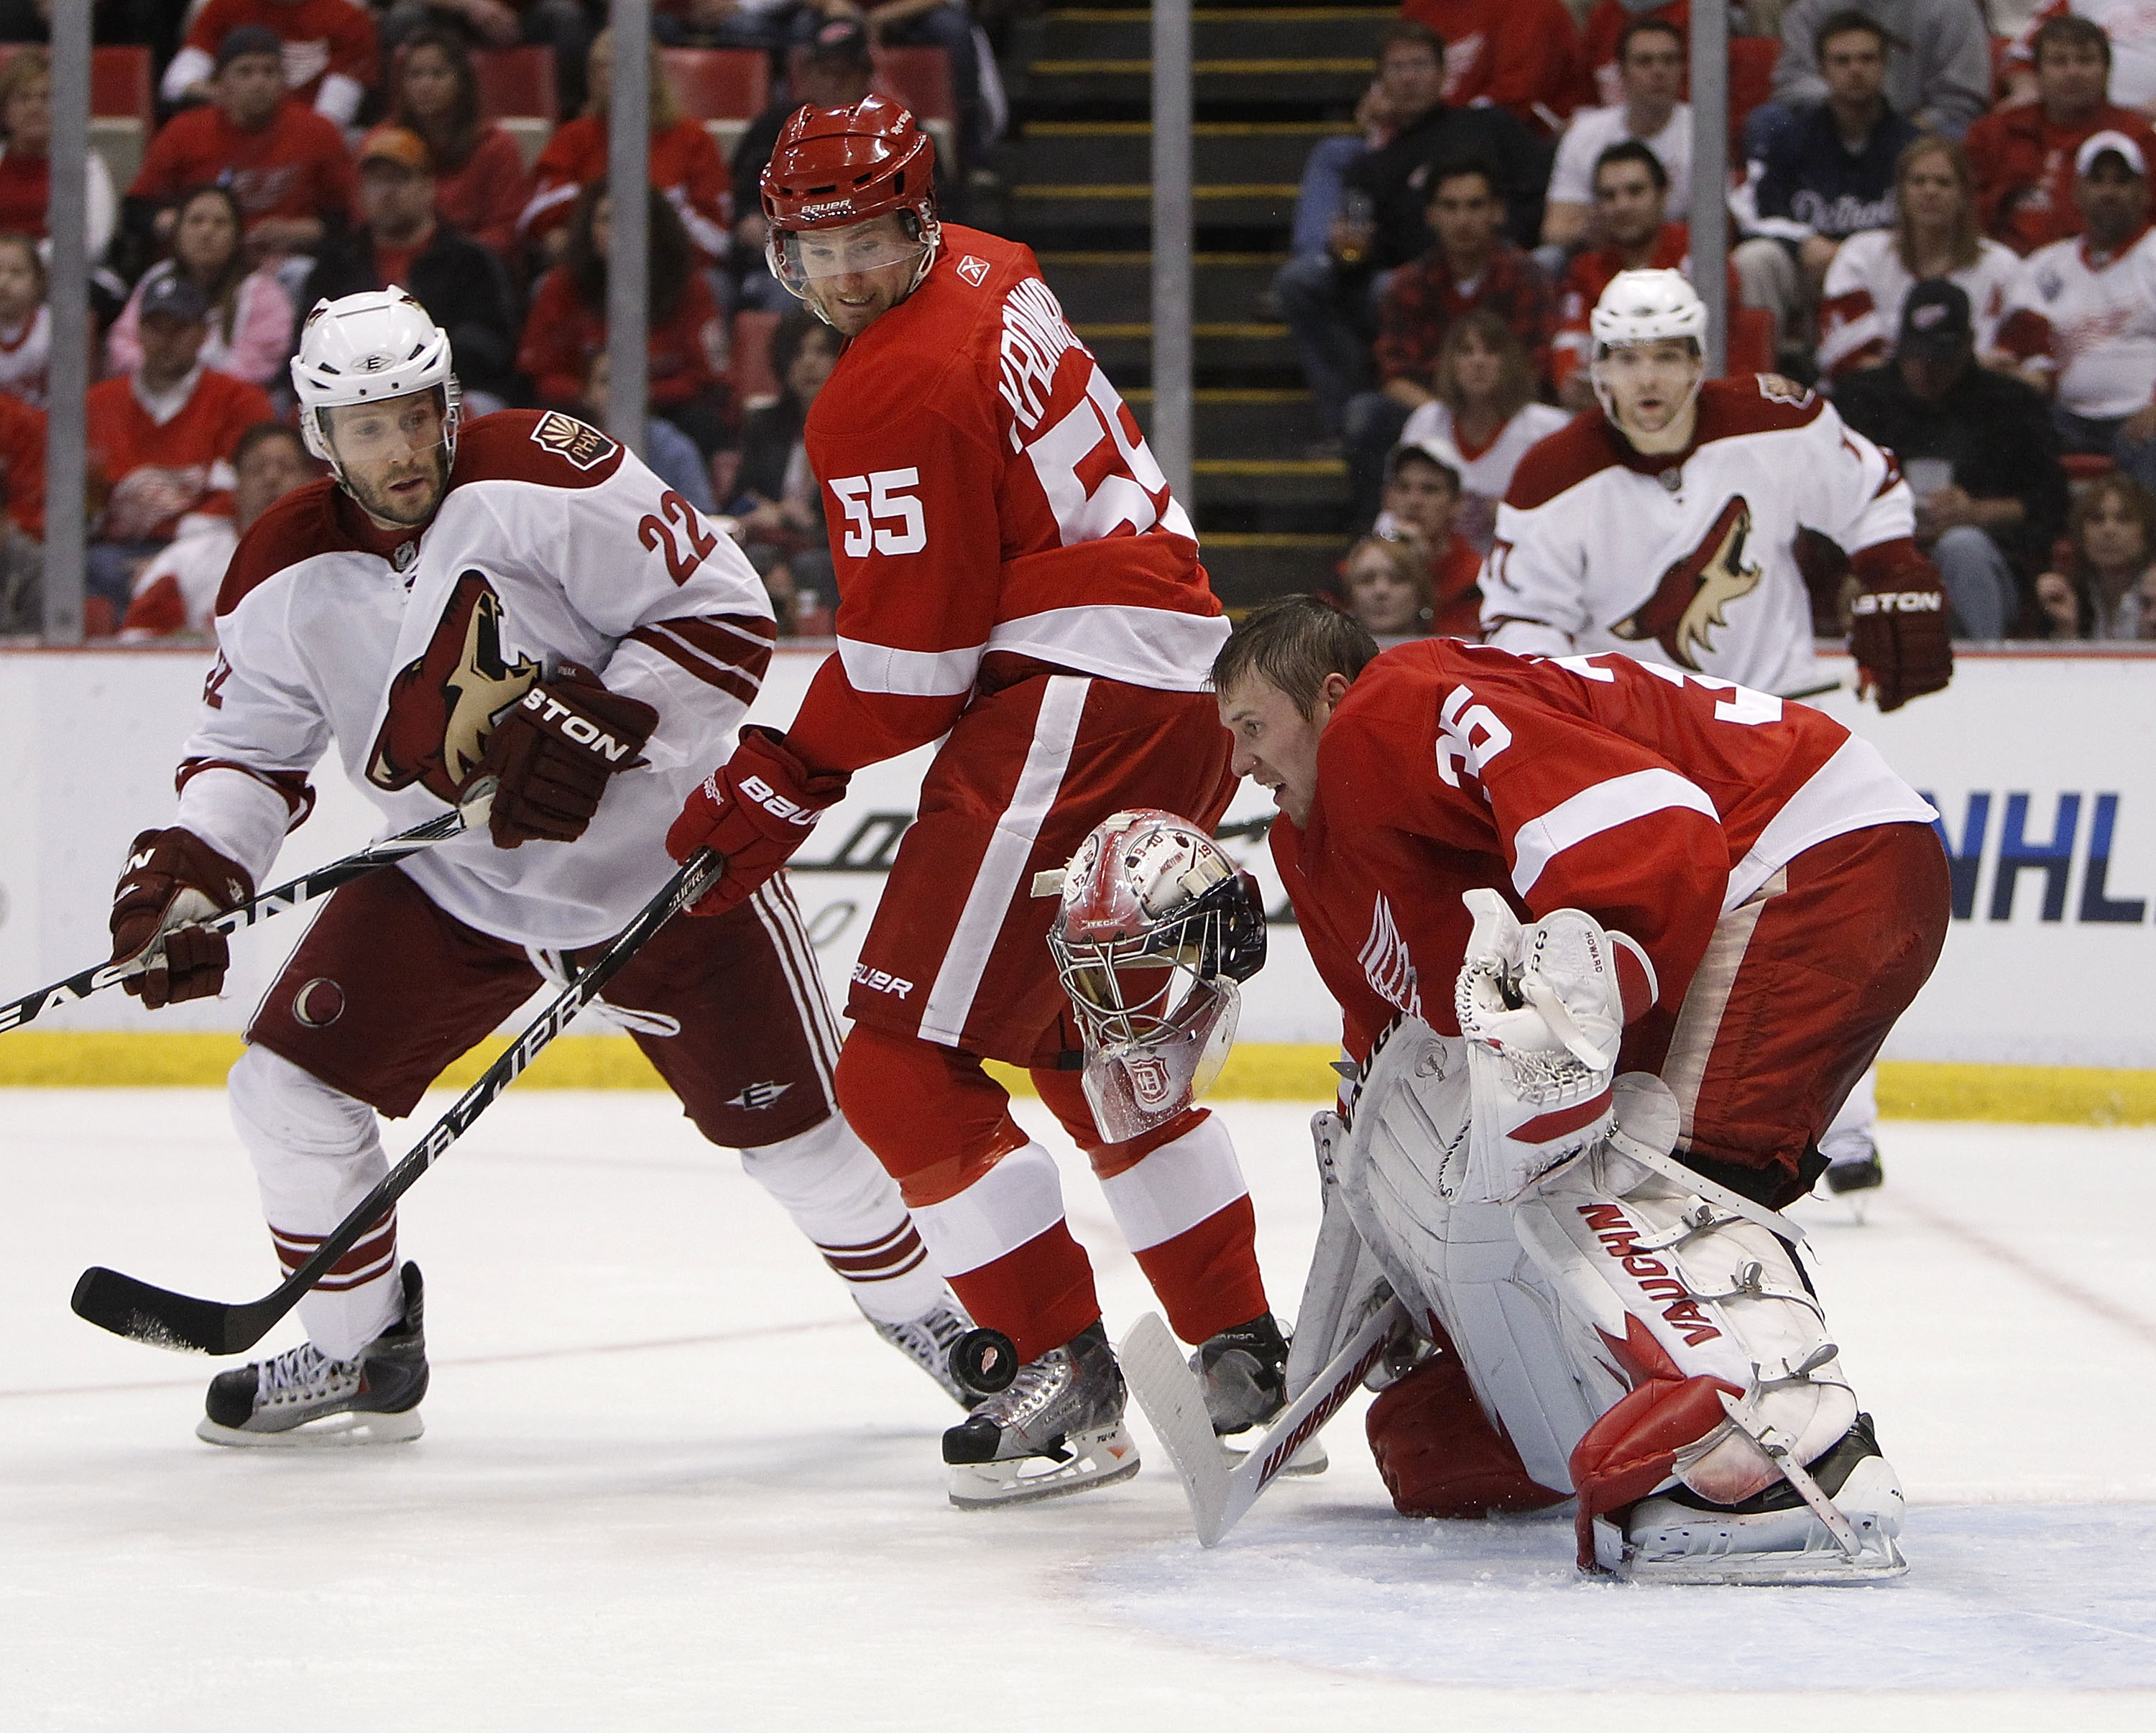 DETROIT - APRIL 20:  Jimmy Howard #35 of the Detroit Red Wings loses his mask making a save behind teammate Niklas Kronwall #55 and Lee Stempniak #22 of the Phoenix Coyotes during Game Four of the Western Conference Quarterfinals of the 2010 NHL Stanley C